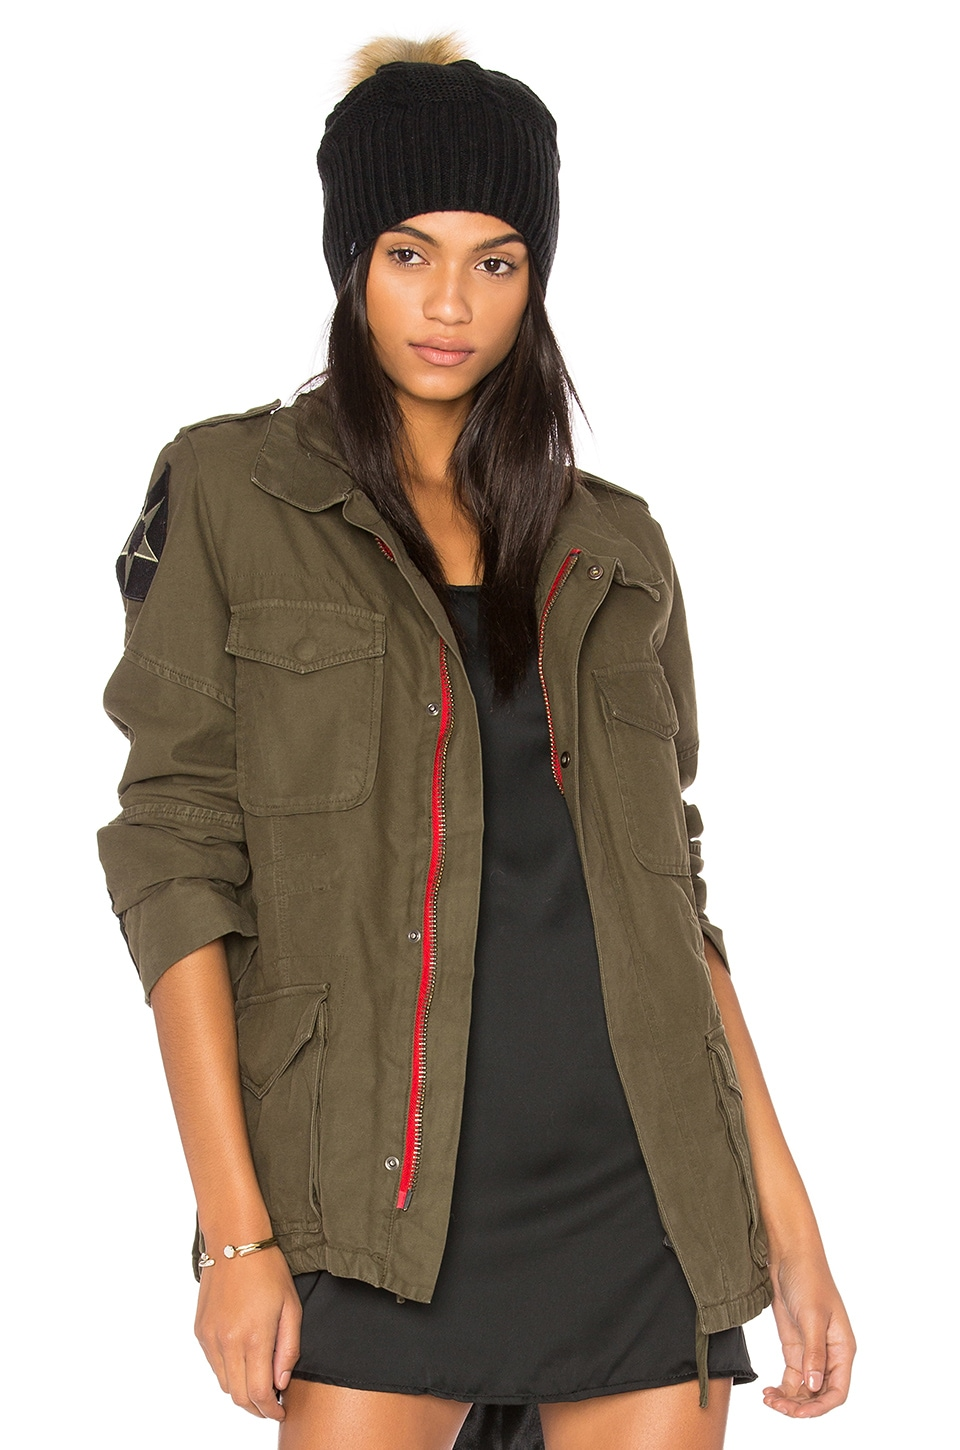 Military Jacket by Etienne Marcel